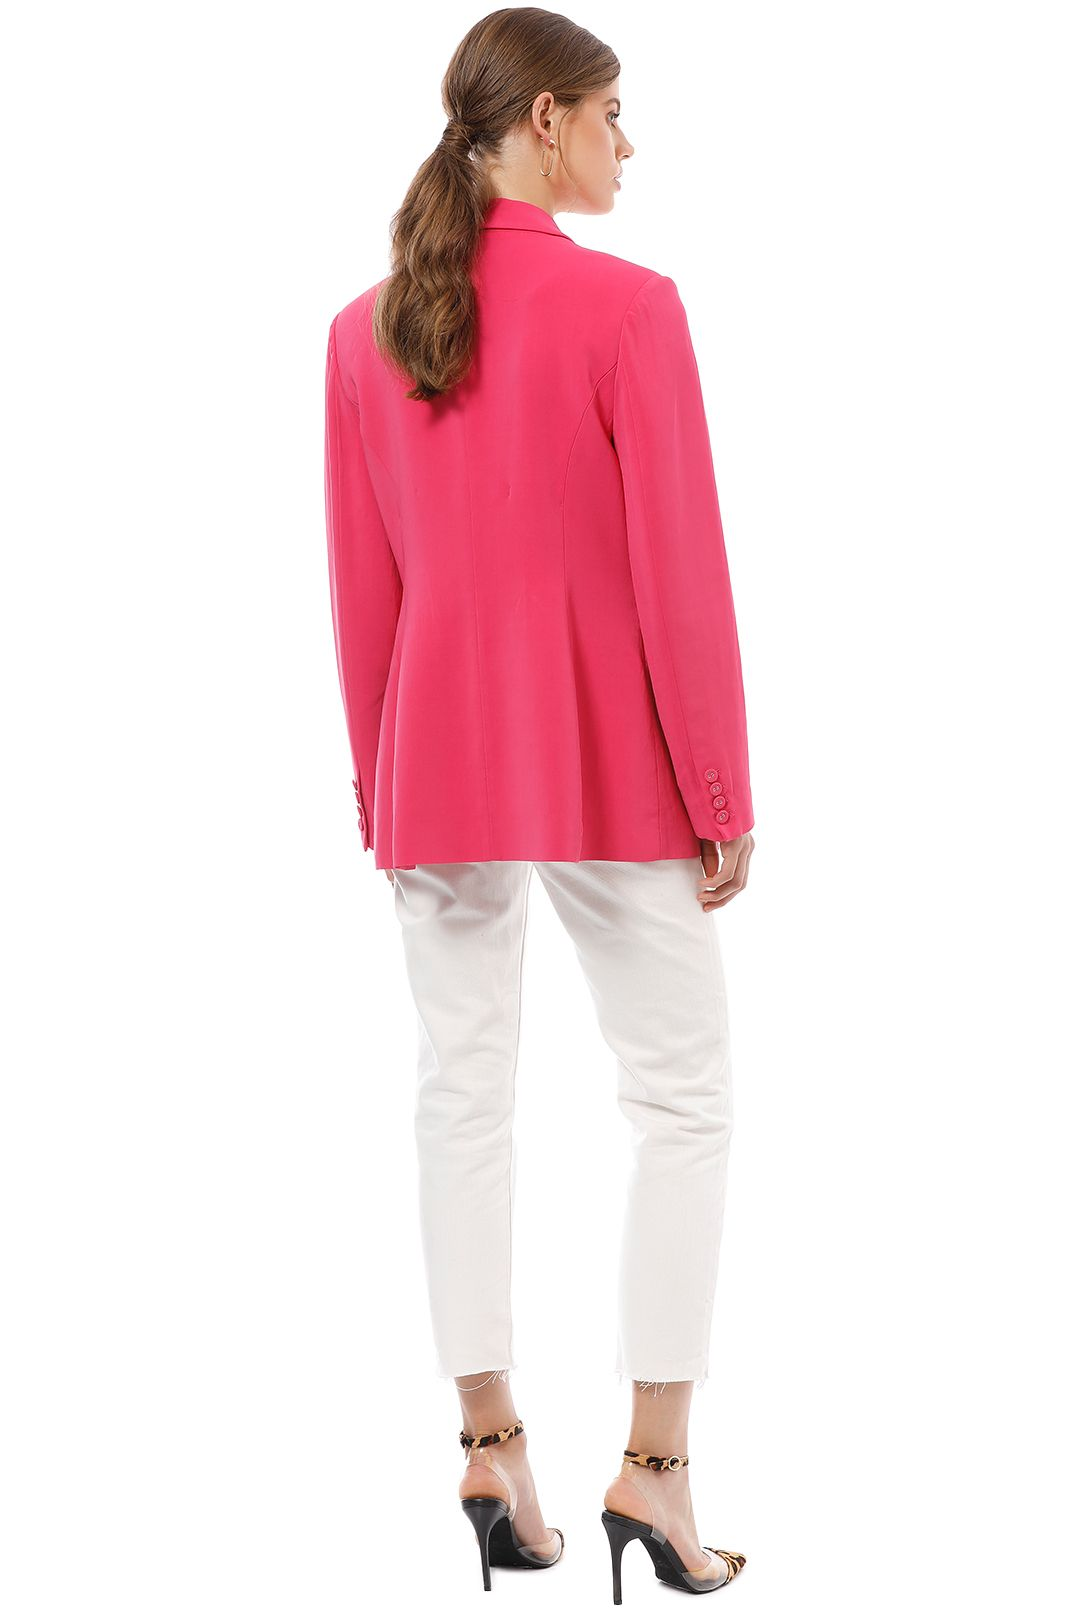 CMEO Collective - Own Light Blazer - Pink - Back